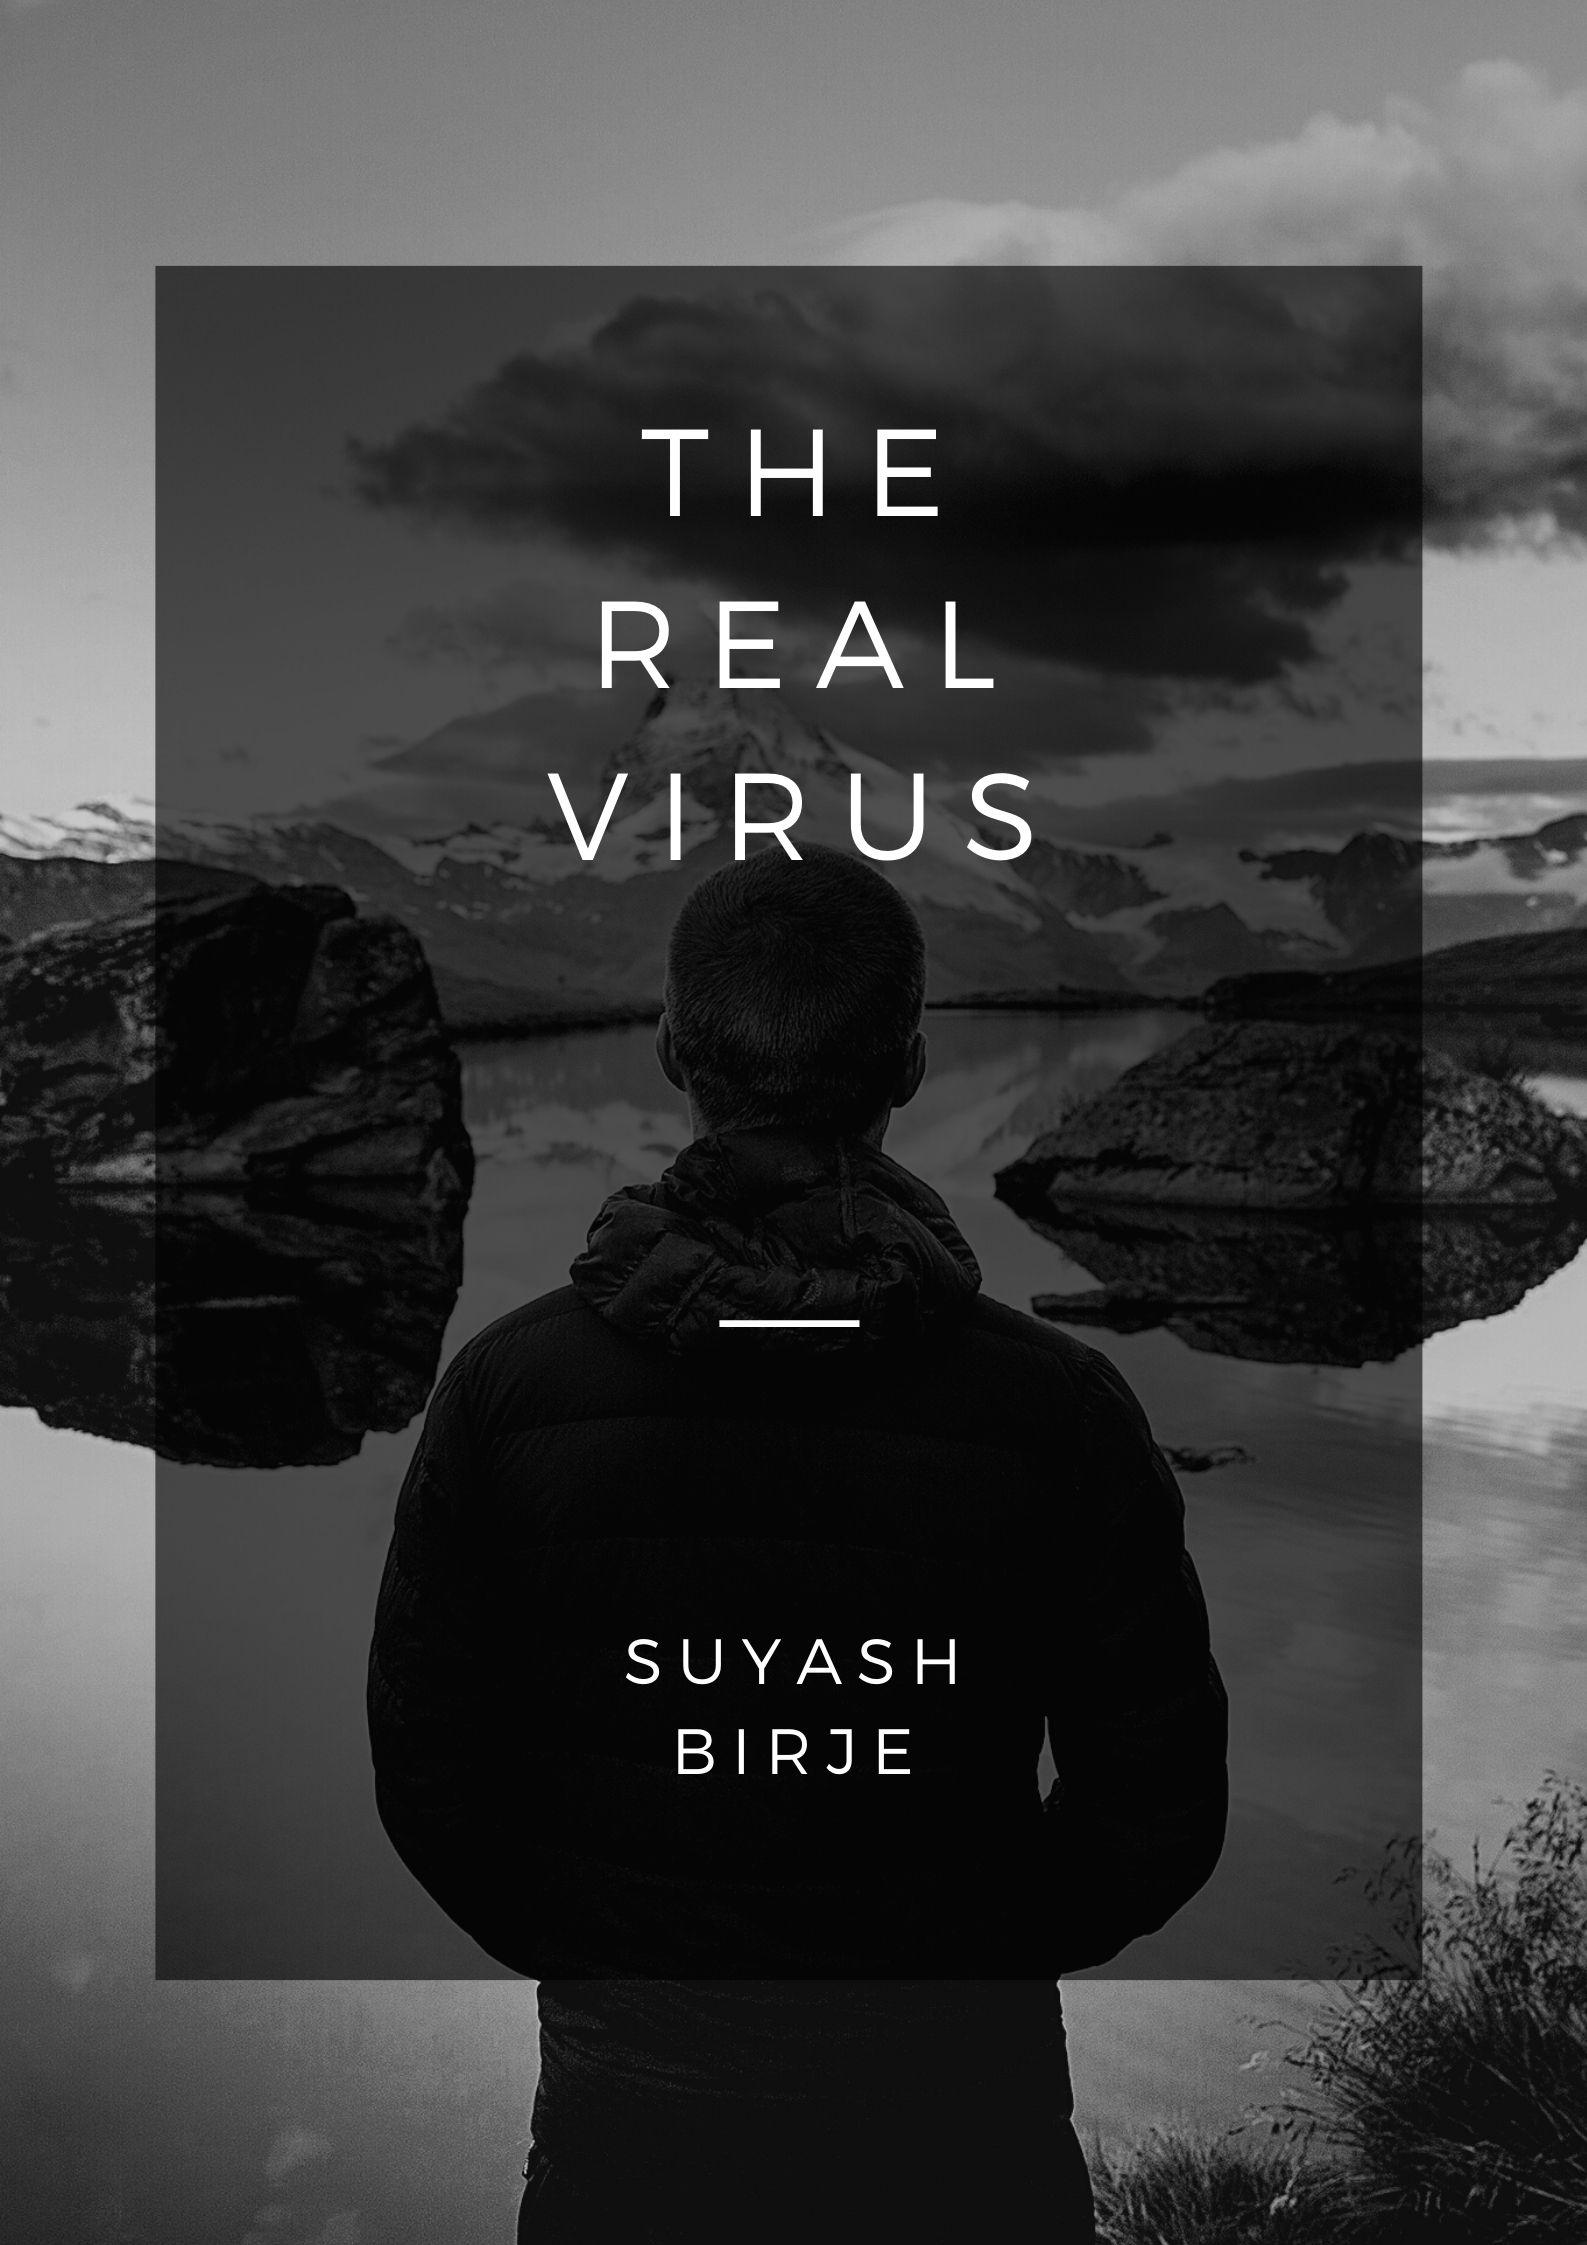 The Real Virus